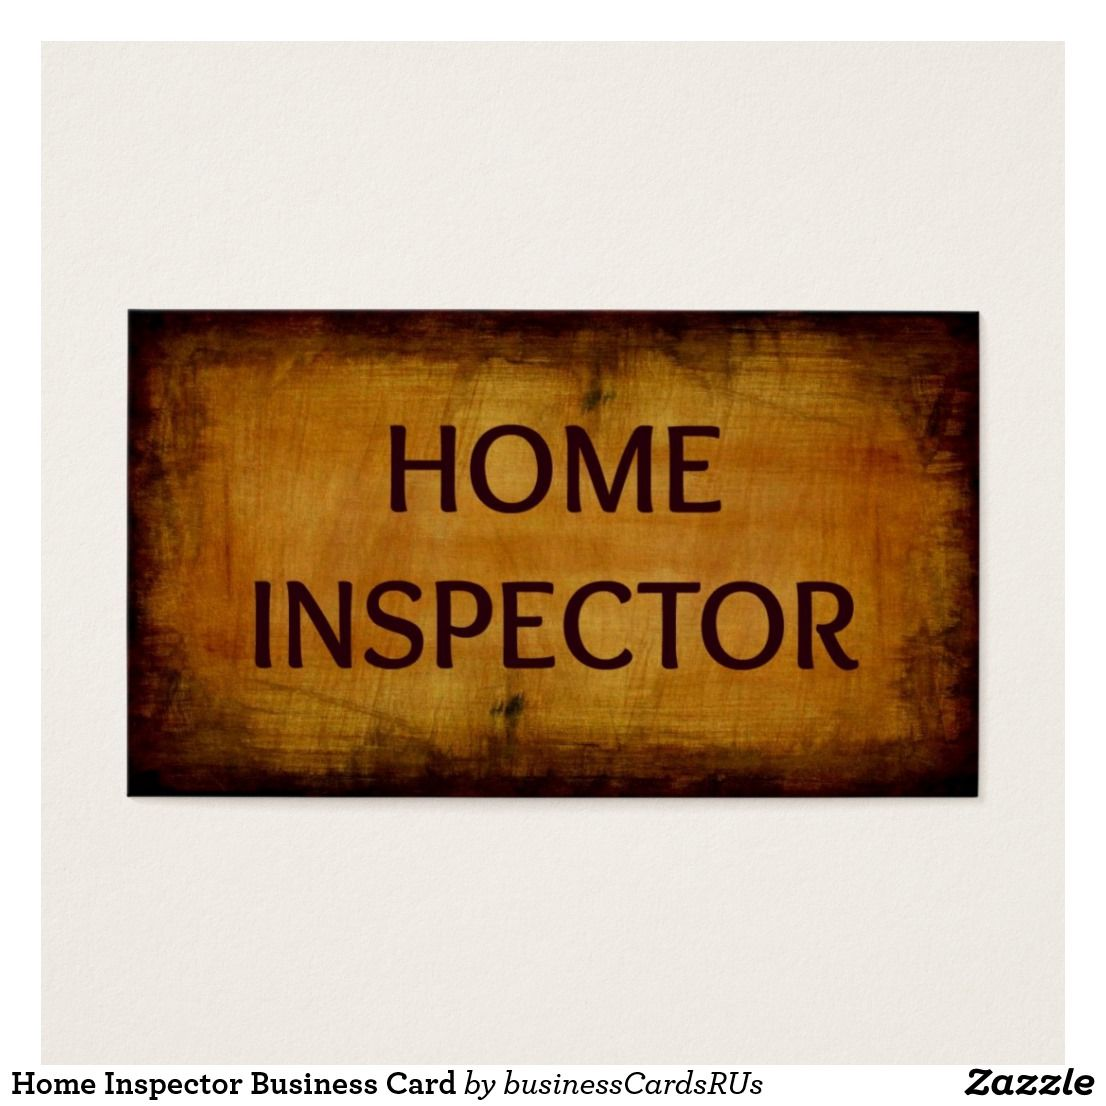 Home Inspector Business Card Zazzle Com Wood Business Cards Printing Business Cards Professional Business Cards